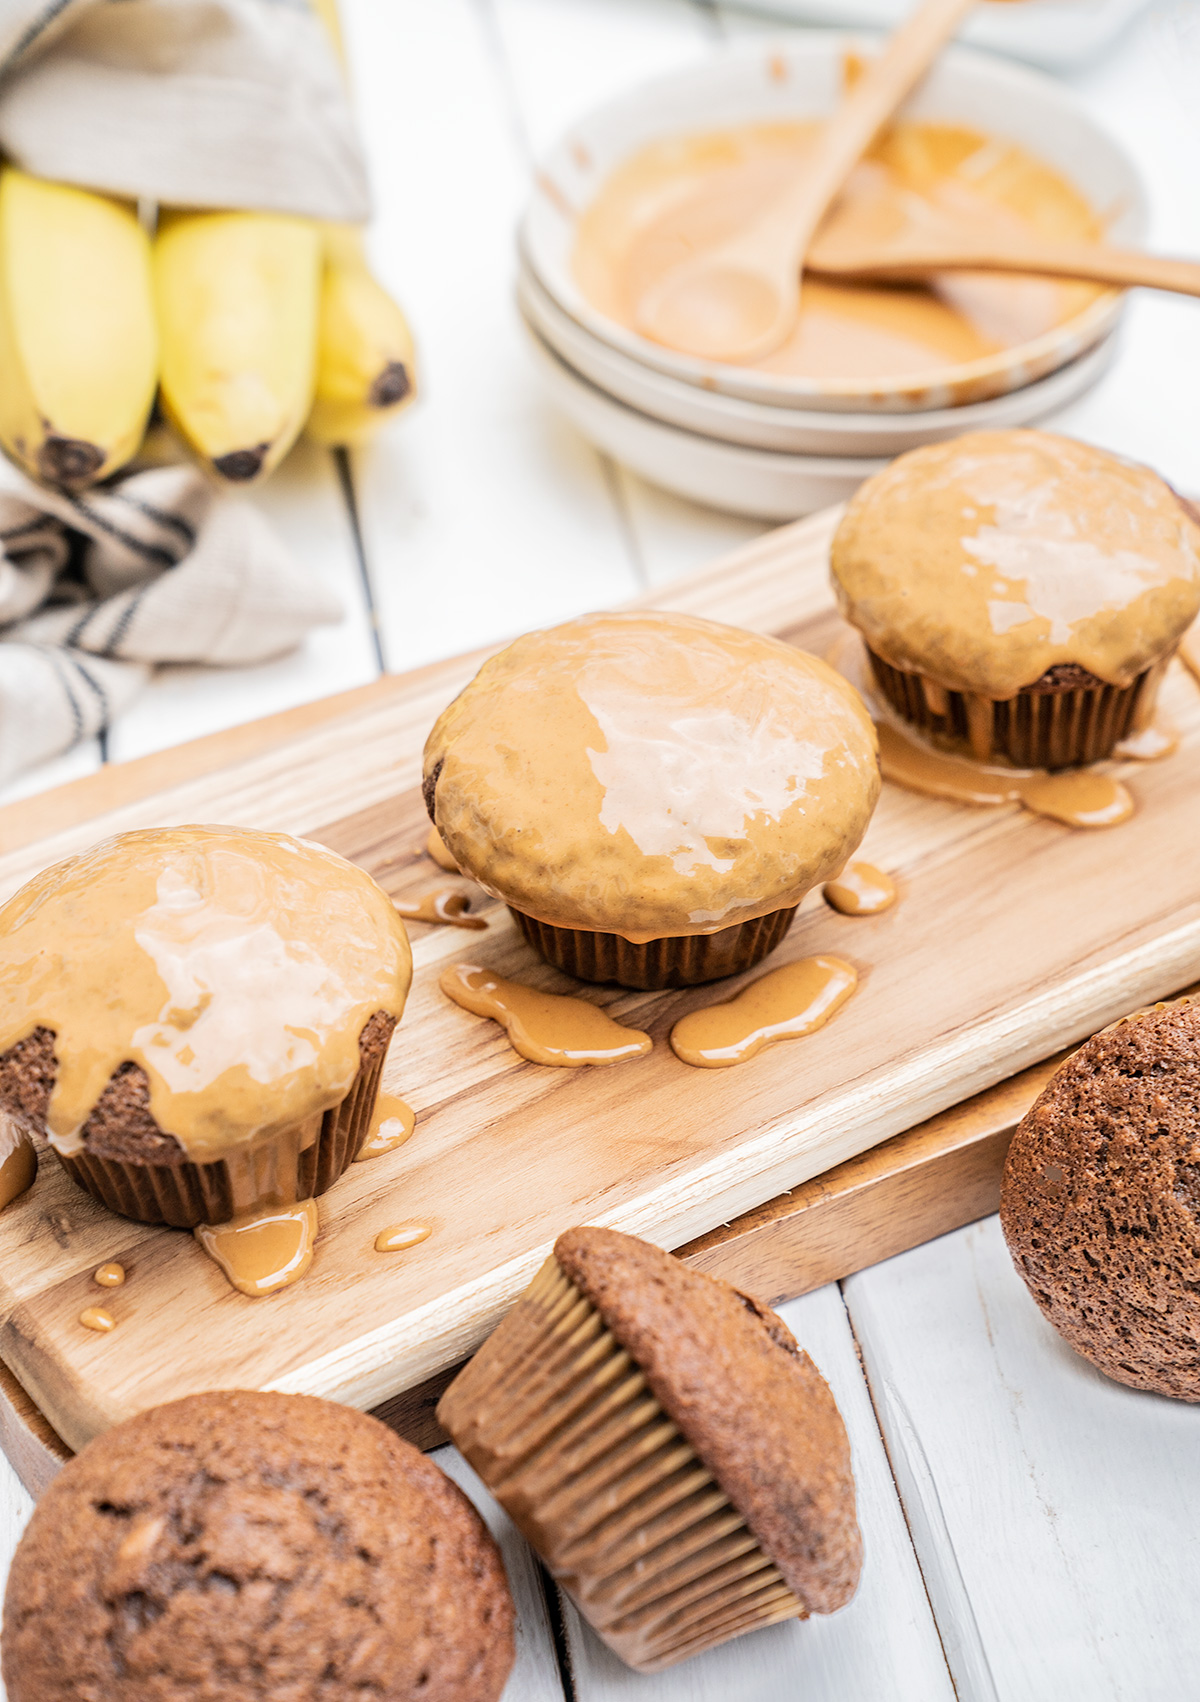 Chocolate-Banana-Muffins-with-Peanut-Butter